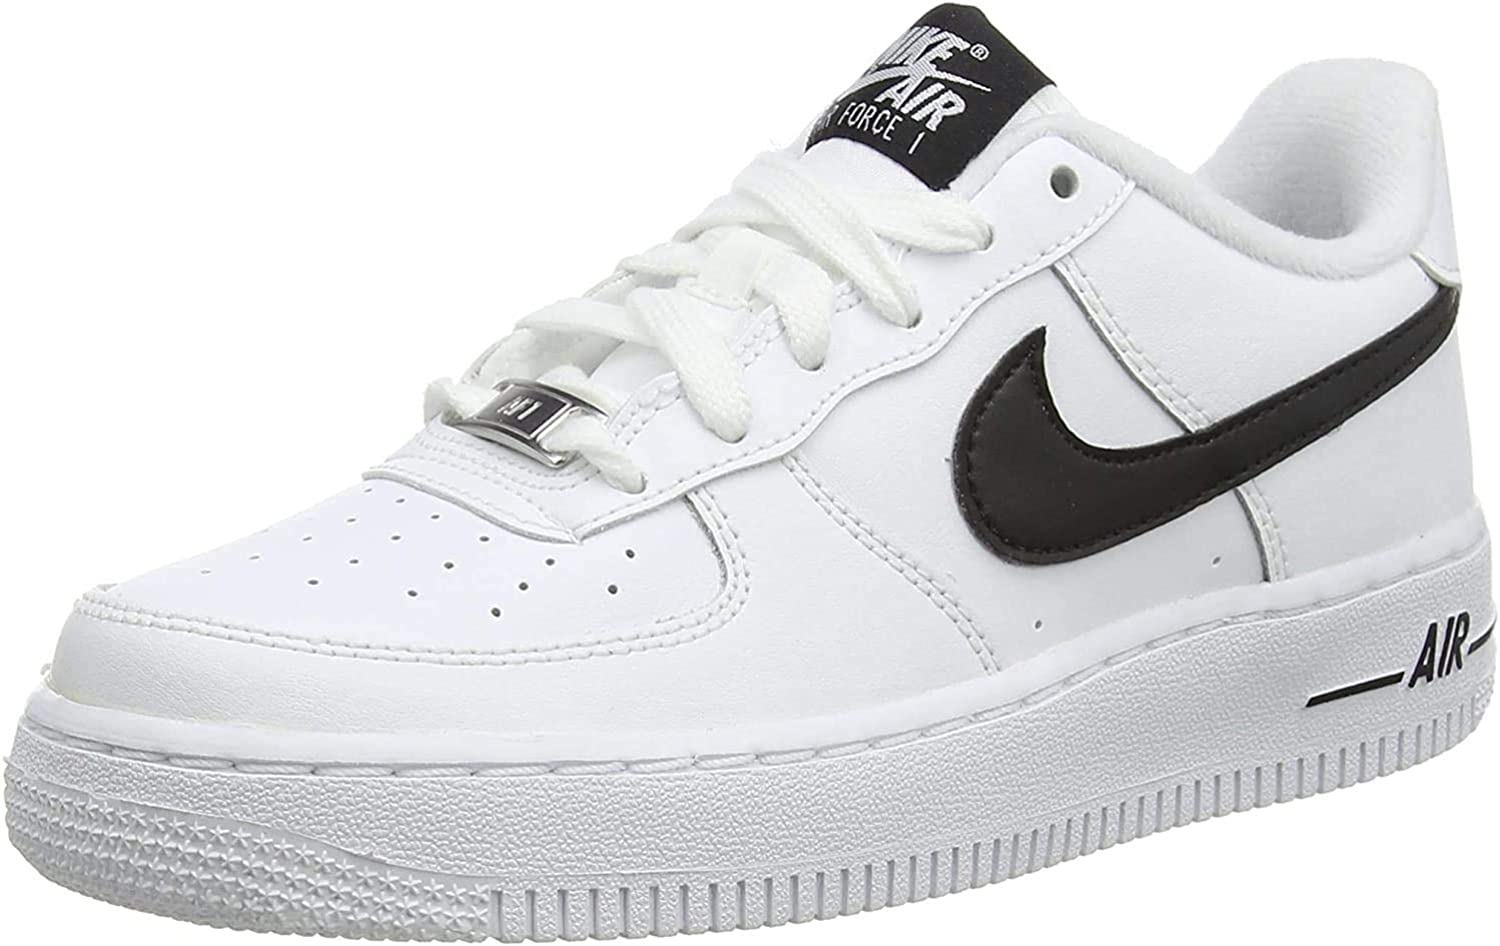 Zapatilla de Baloncesto para Ni/ños White//Black Nike Air Force 1 An20 39 EU GS